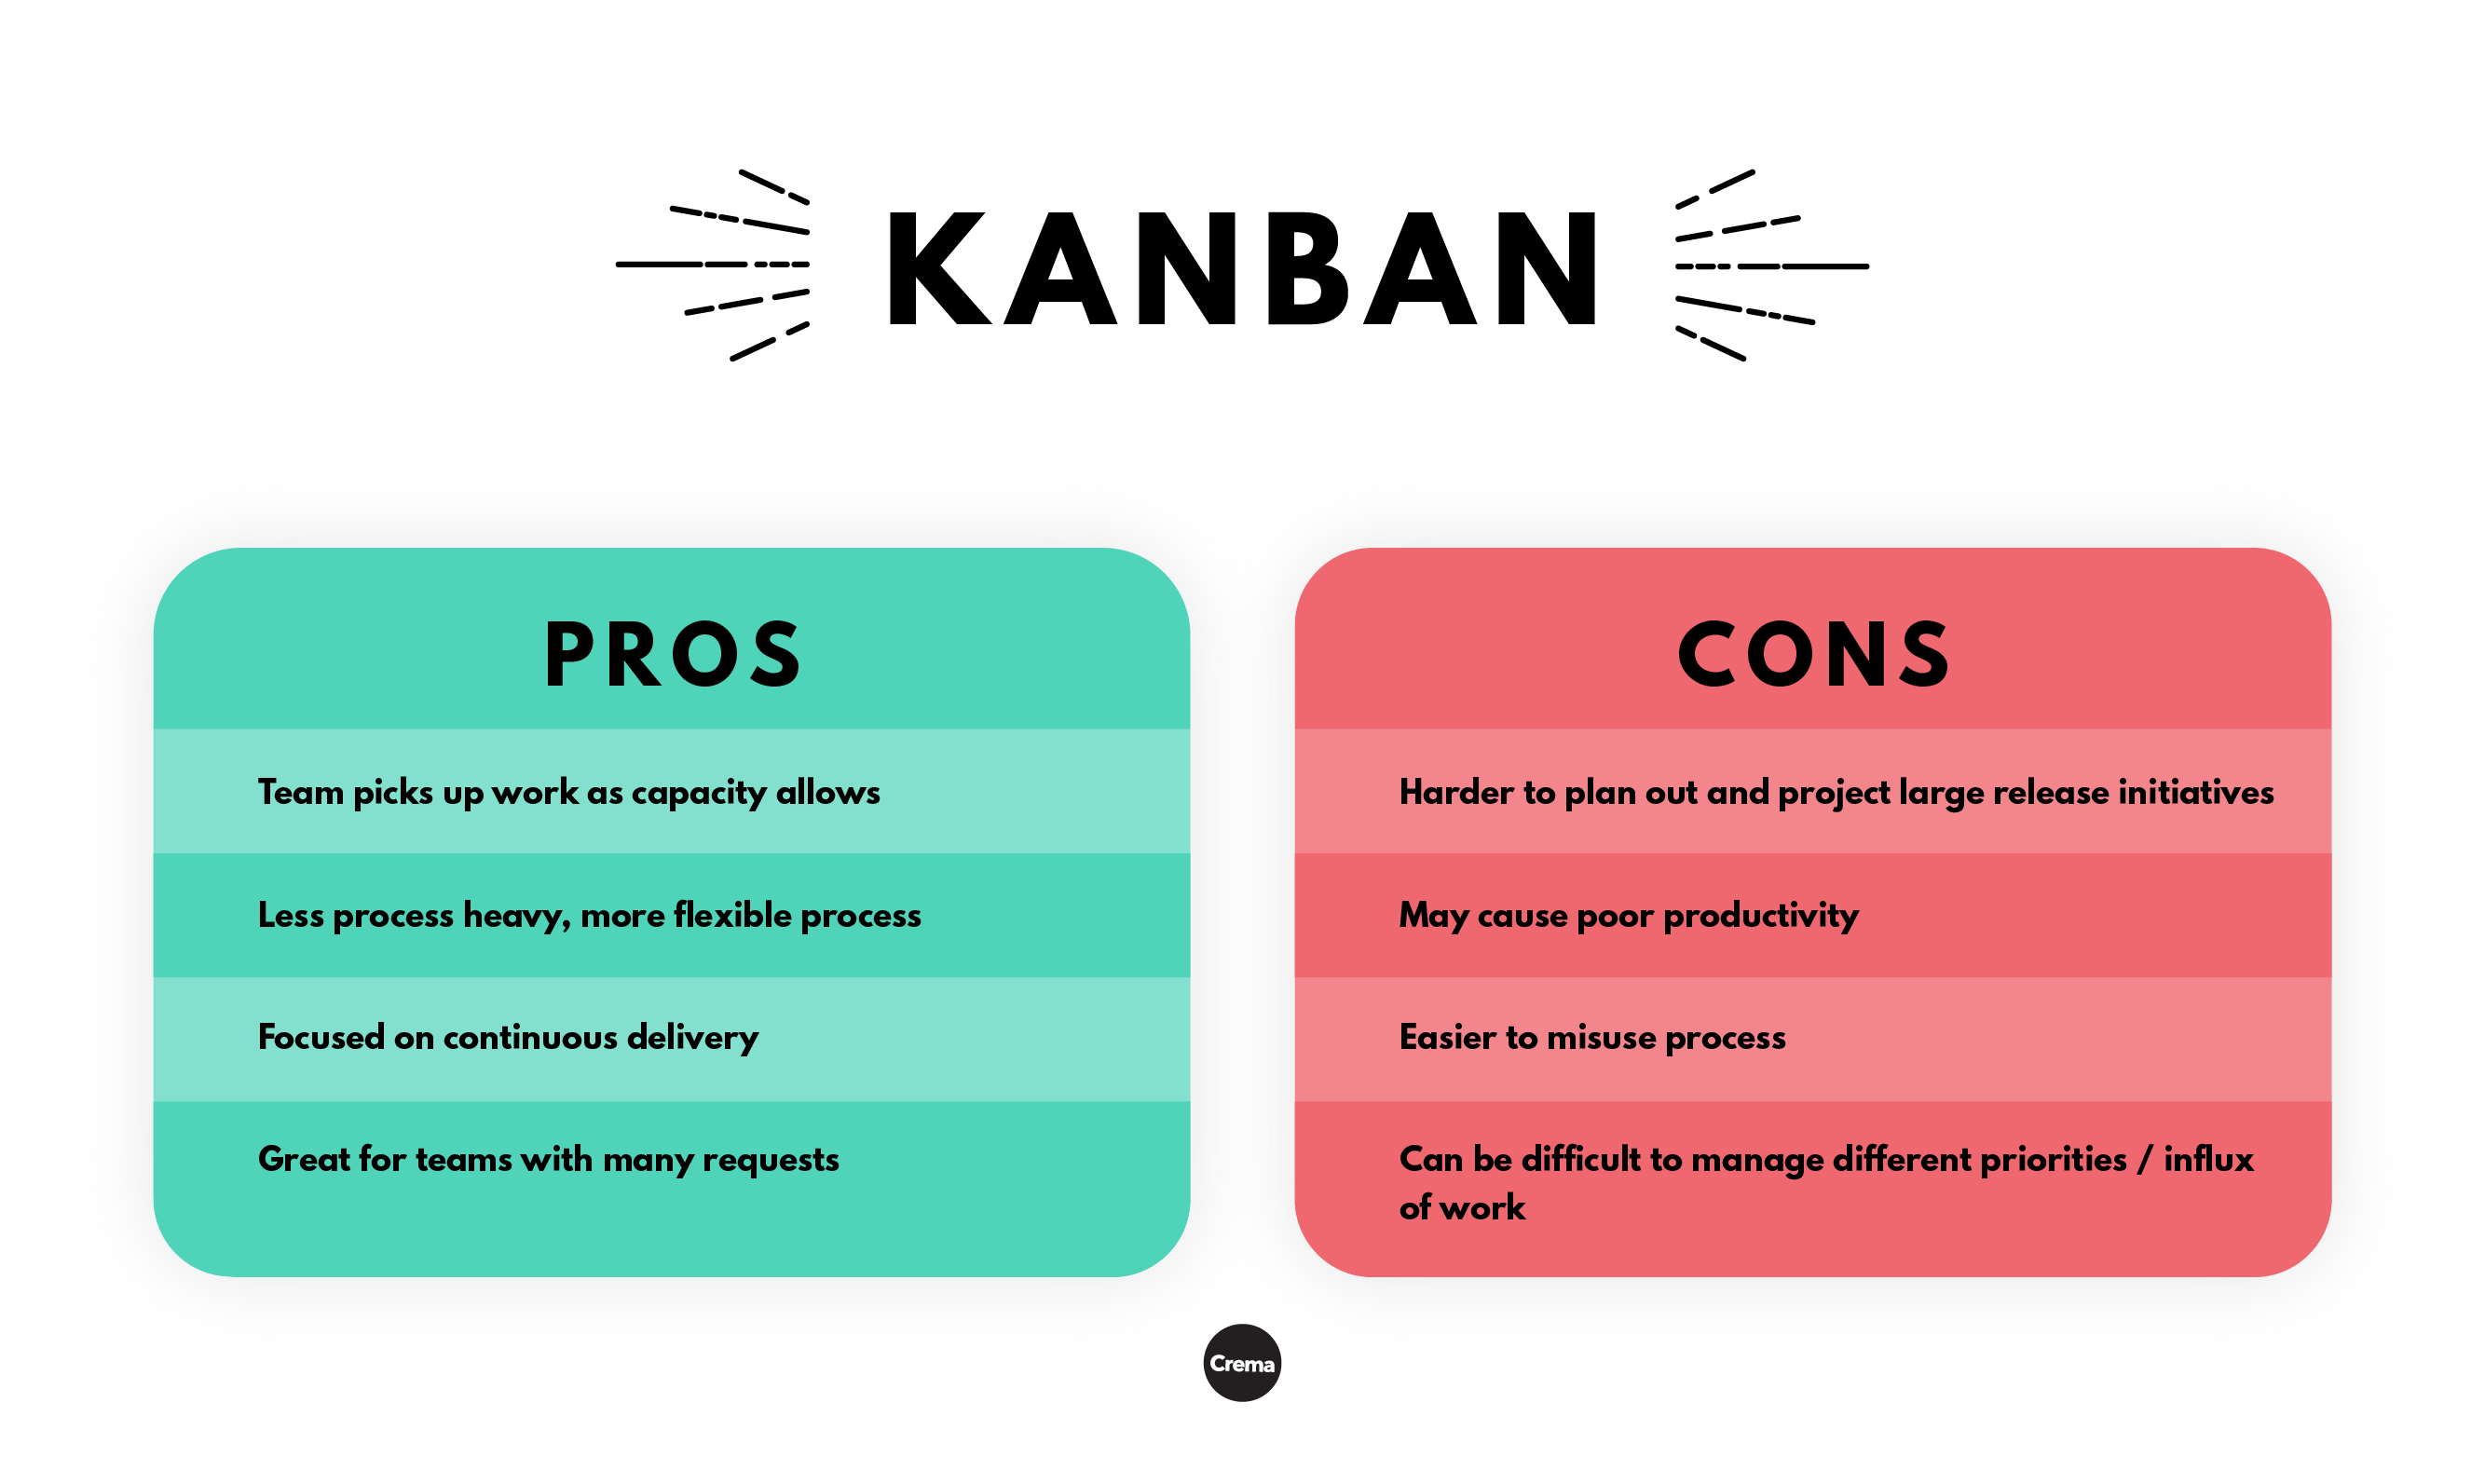 kanban chart pros and cons in pink and teal